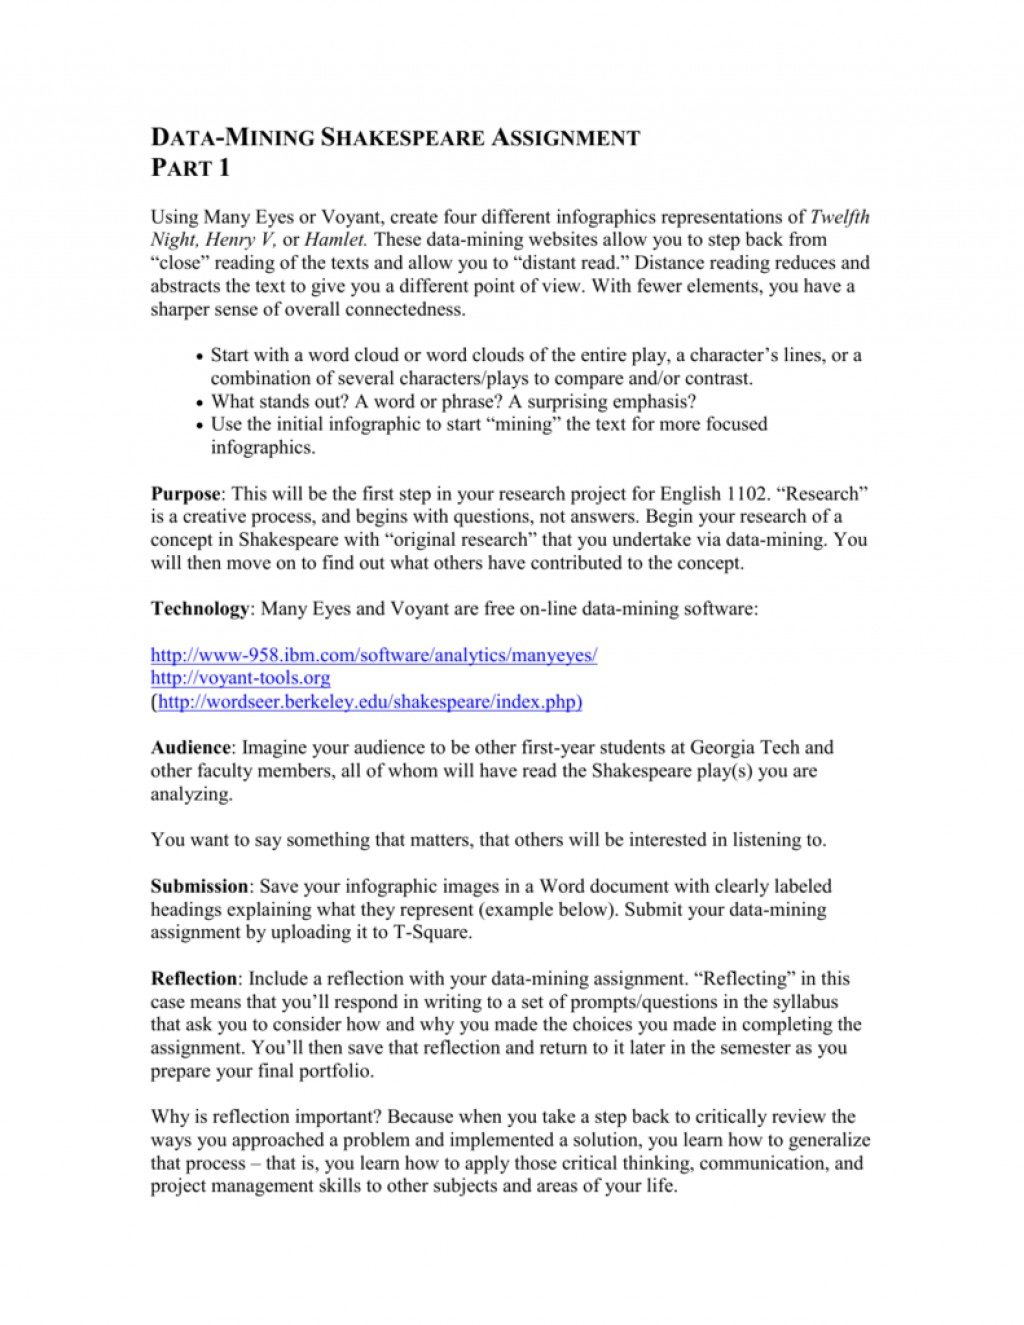 014 Essay Example 008753559 1 How To Begin Amazing A Critical Review Structure Response Large